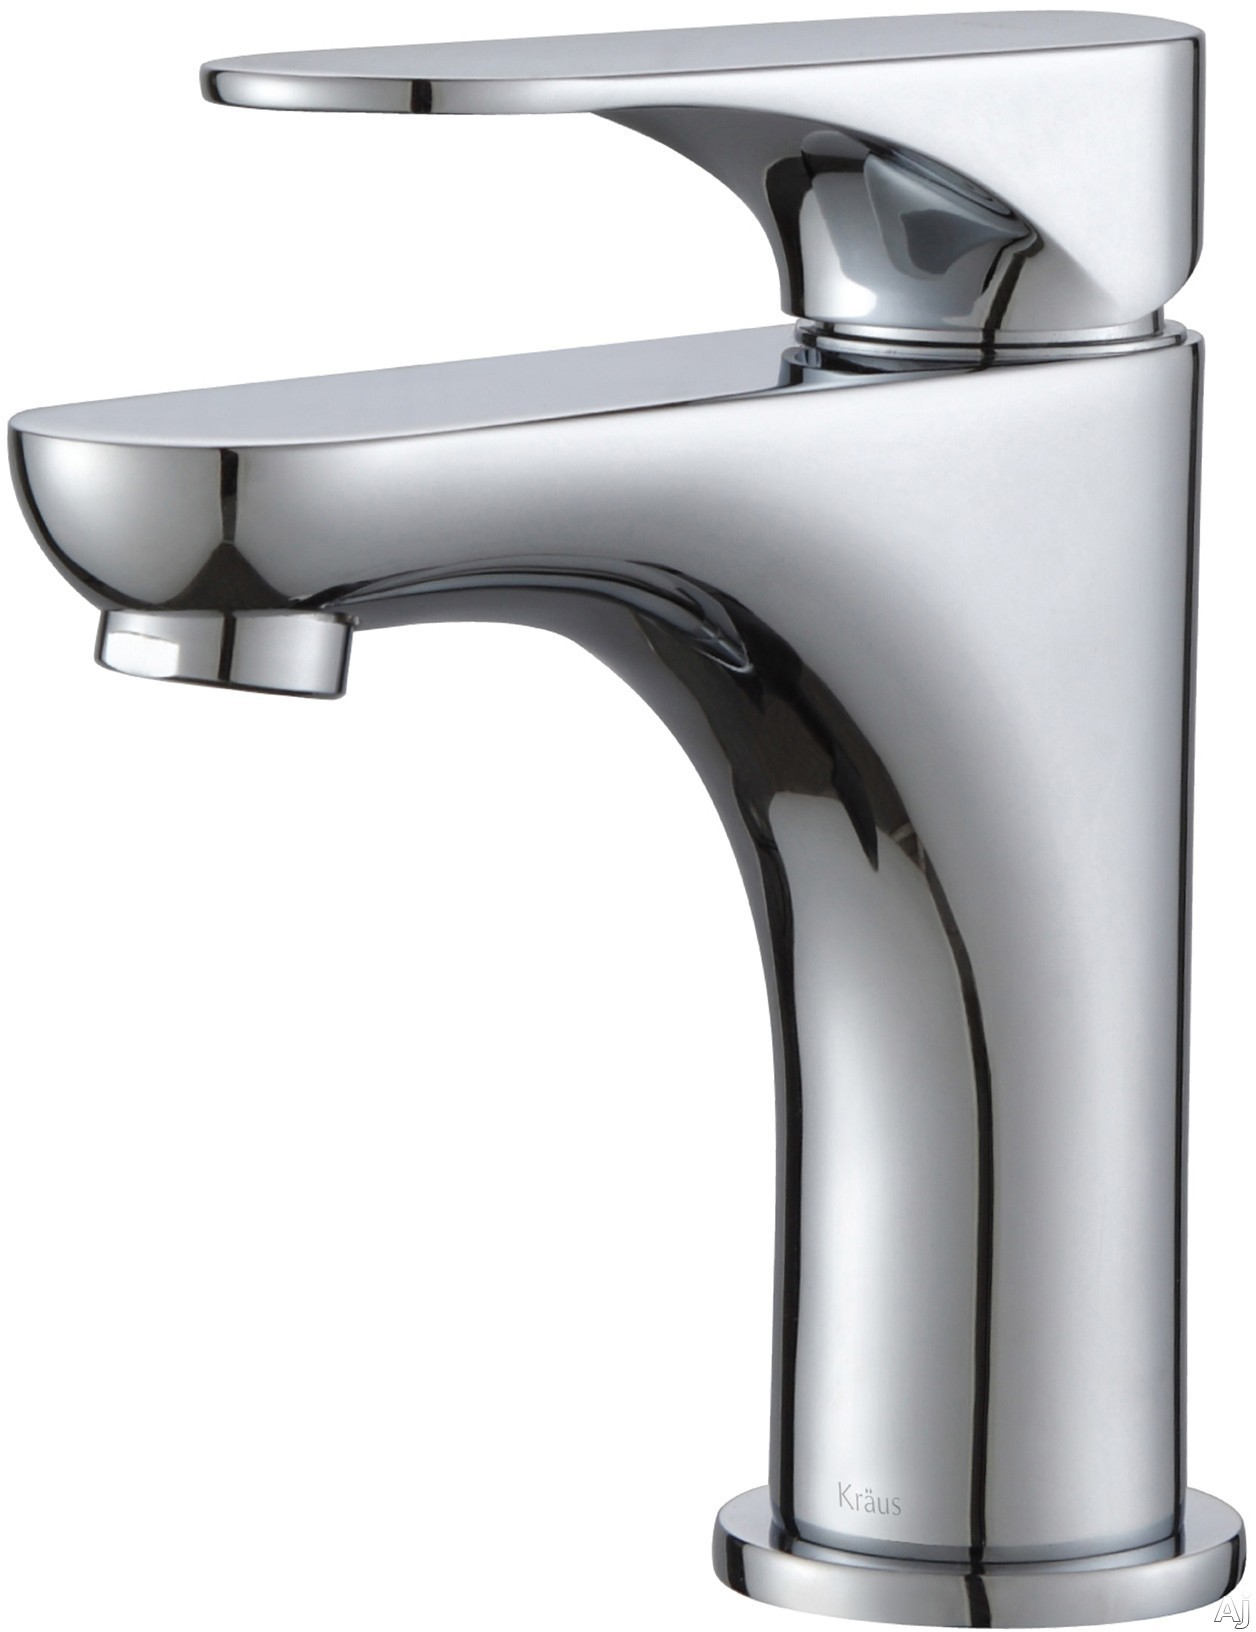 Kraus Aquila Series FUS13901CH Single Handle Cast Spout Bathroom Faucet with 431 Inch Reach 397 Inch Spout Height Kerox Ceramic Cartridge and High Performance Low Flow Neoperl Aerator Brushed Nickel Chrome